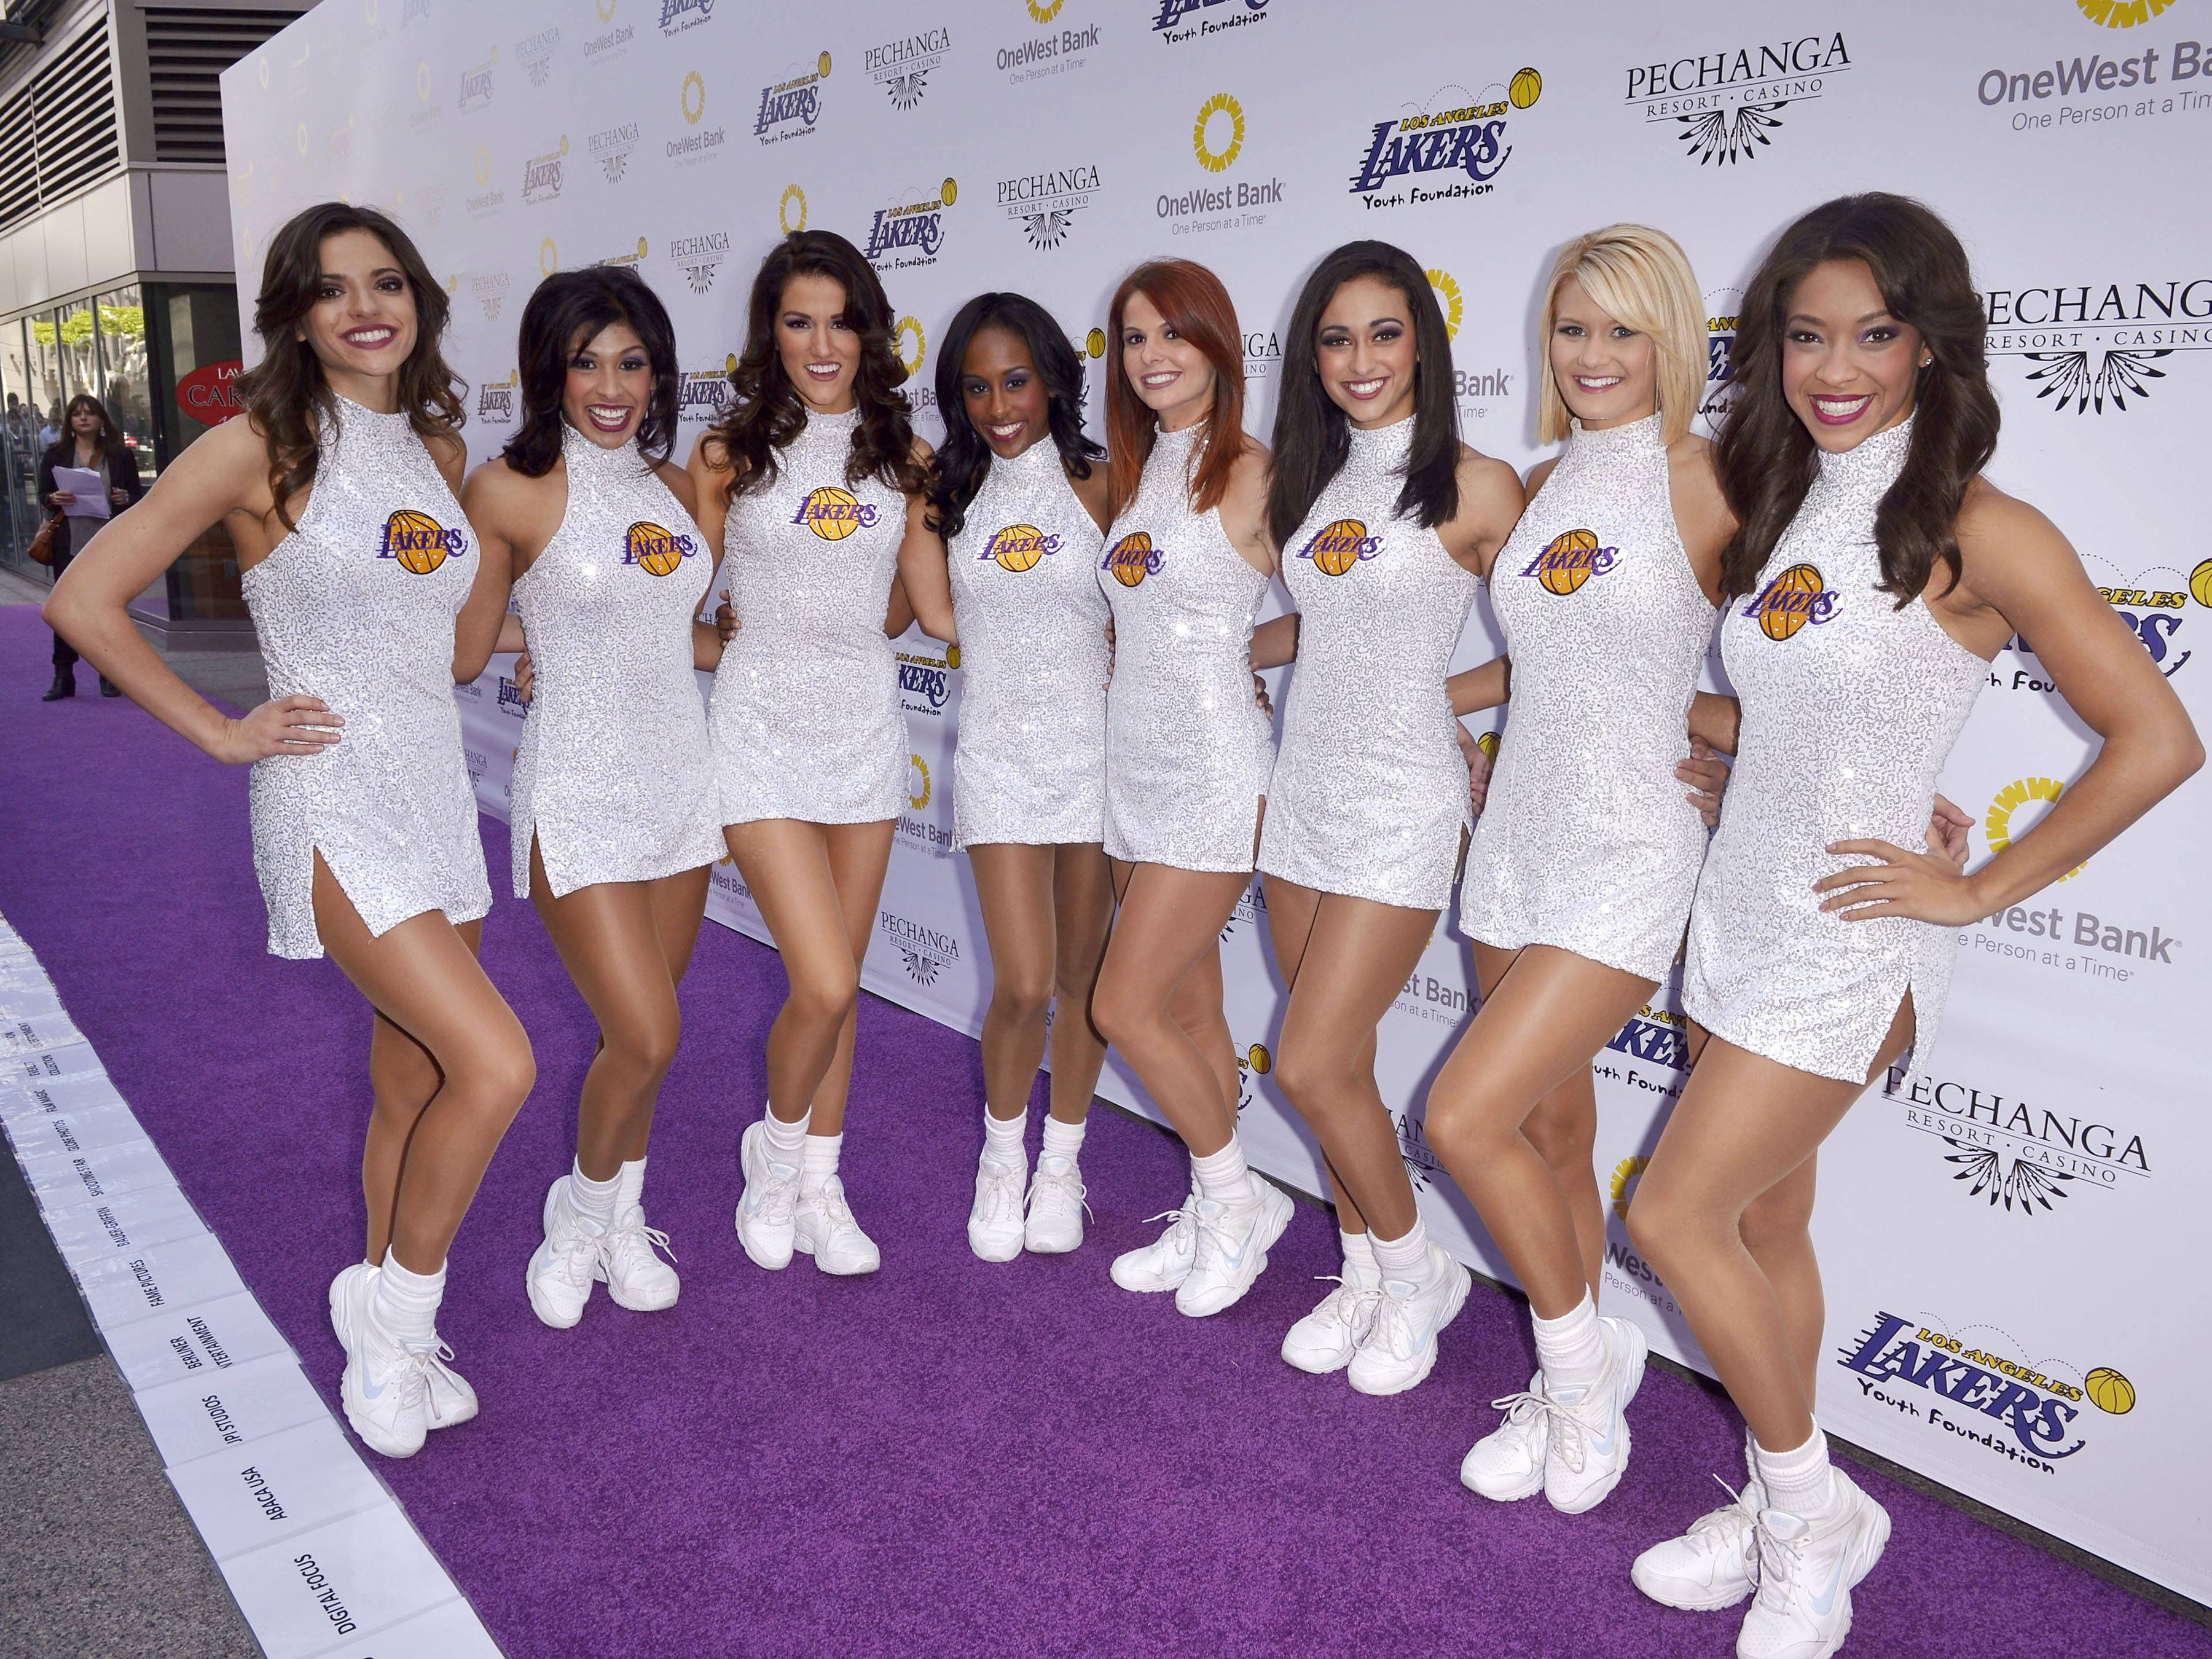 Laker Foundation Event & Party